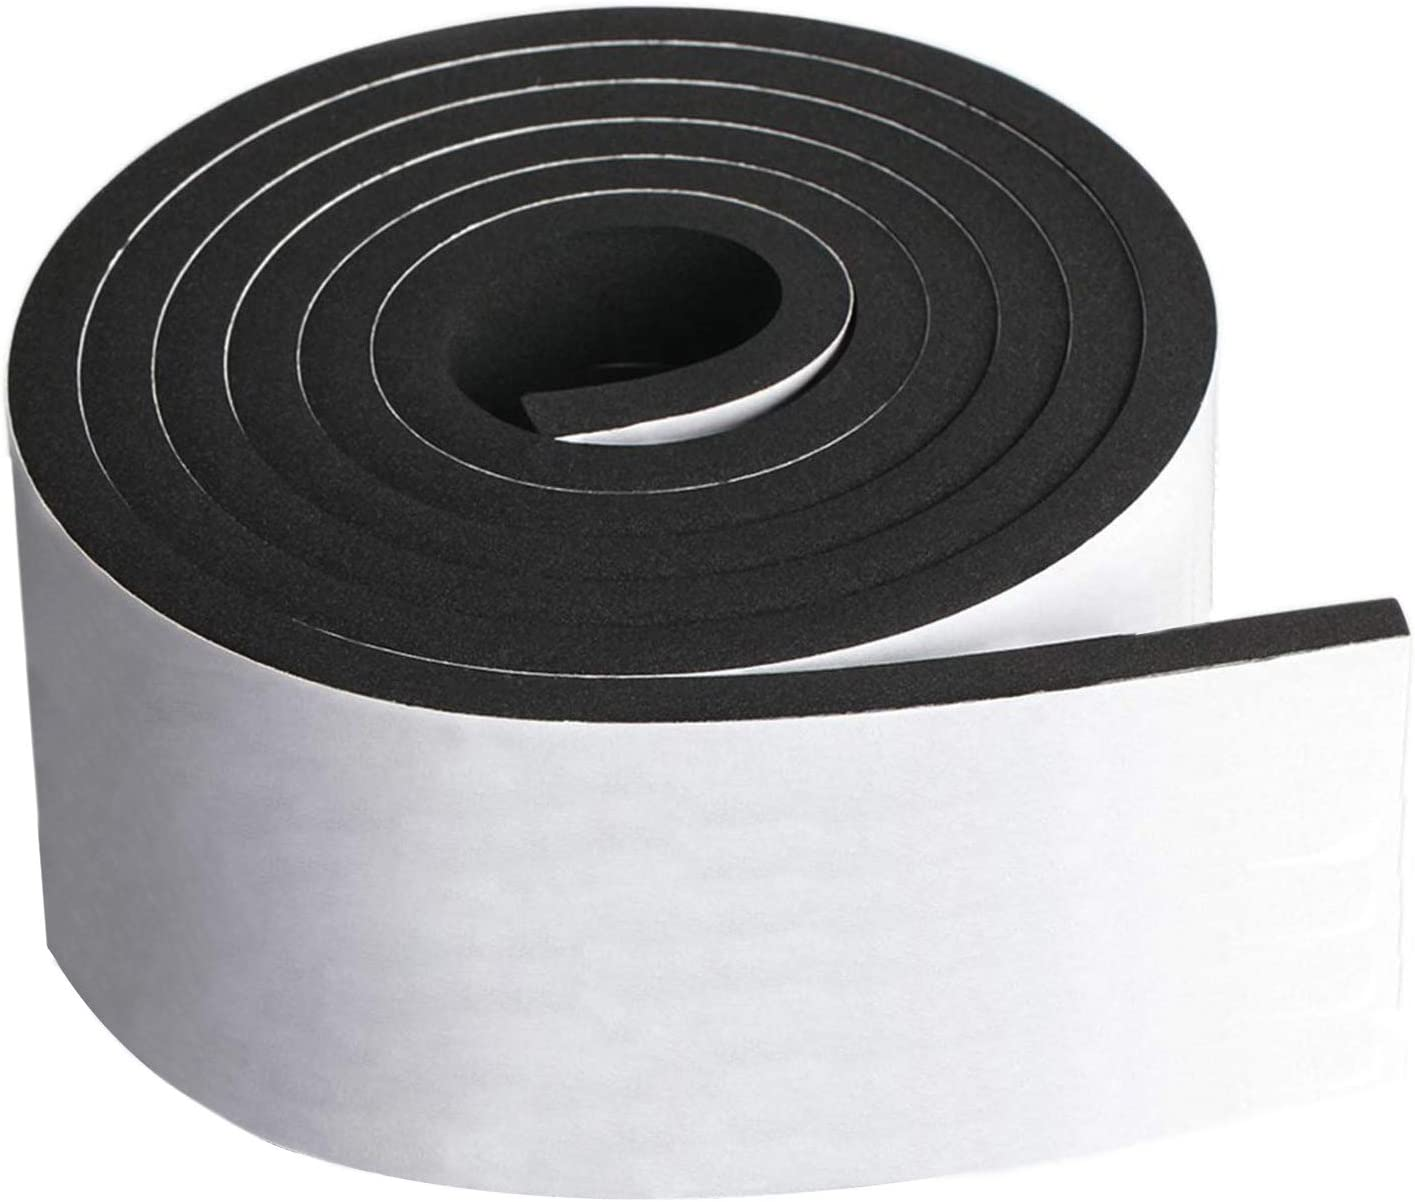 """Neoprene Foam Strip Roll by Dualplex, 4"""" Wide x10' Long 1/4"""" Thick, Weather Seal High Density Stripping with Adhesive Backing – Weather Strip Roll Insulation Foam Strips"""